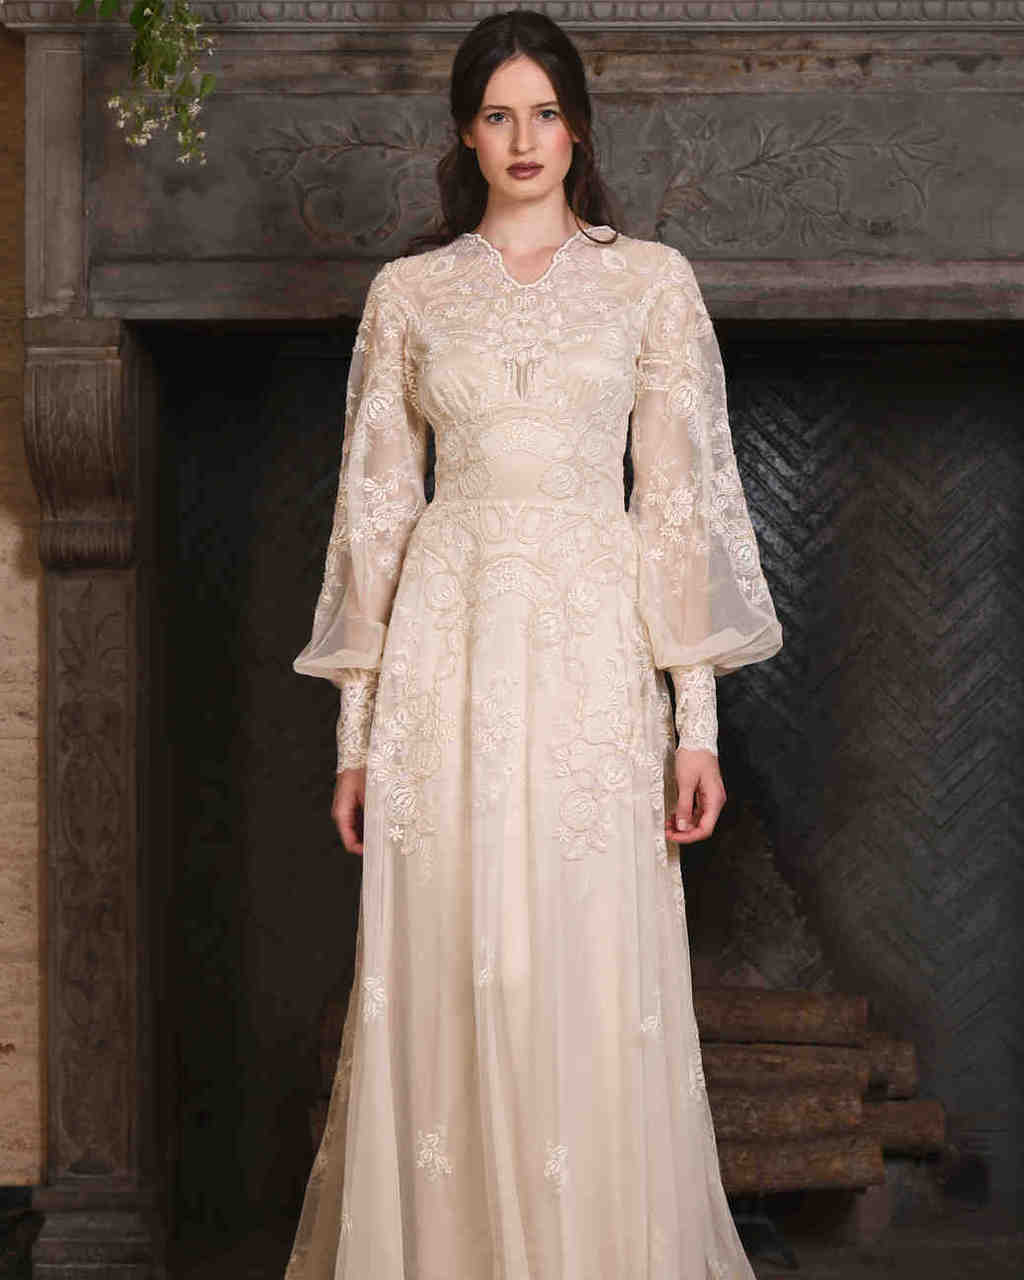 claire-pettibone-wedding-dress-fall2017-012_vert